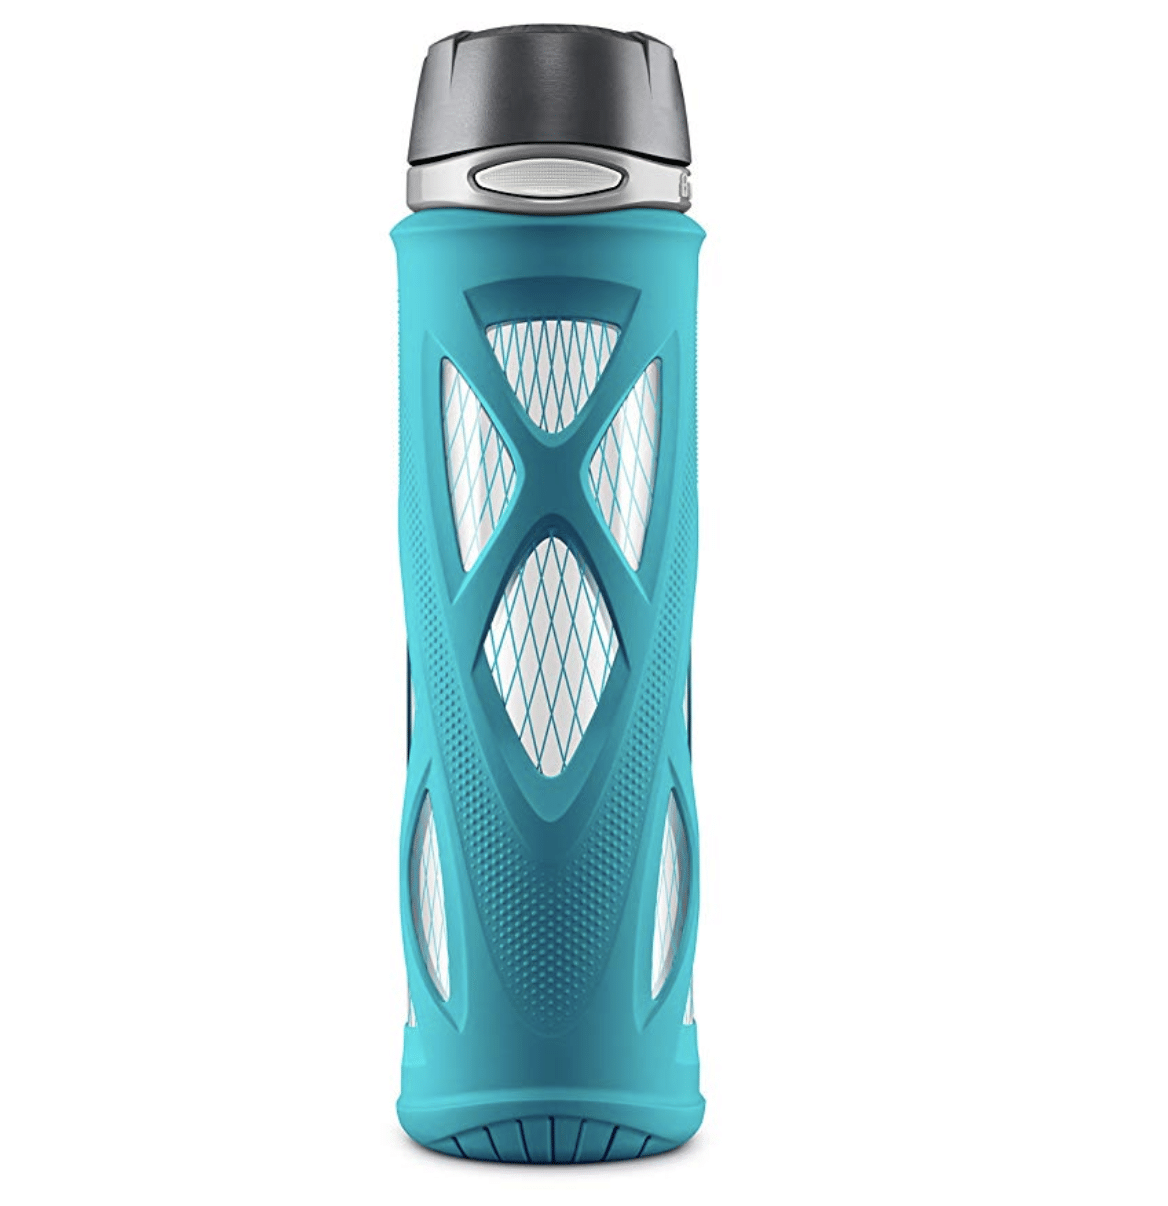 Fantastic Best Glass Water Bottles Sept 2019 Expert Ratings Reviews Interior Design Ideas Inesswwsoteloinfo